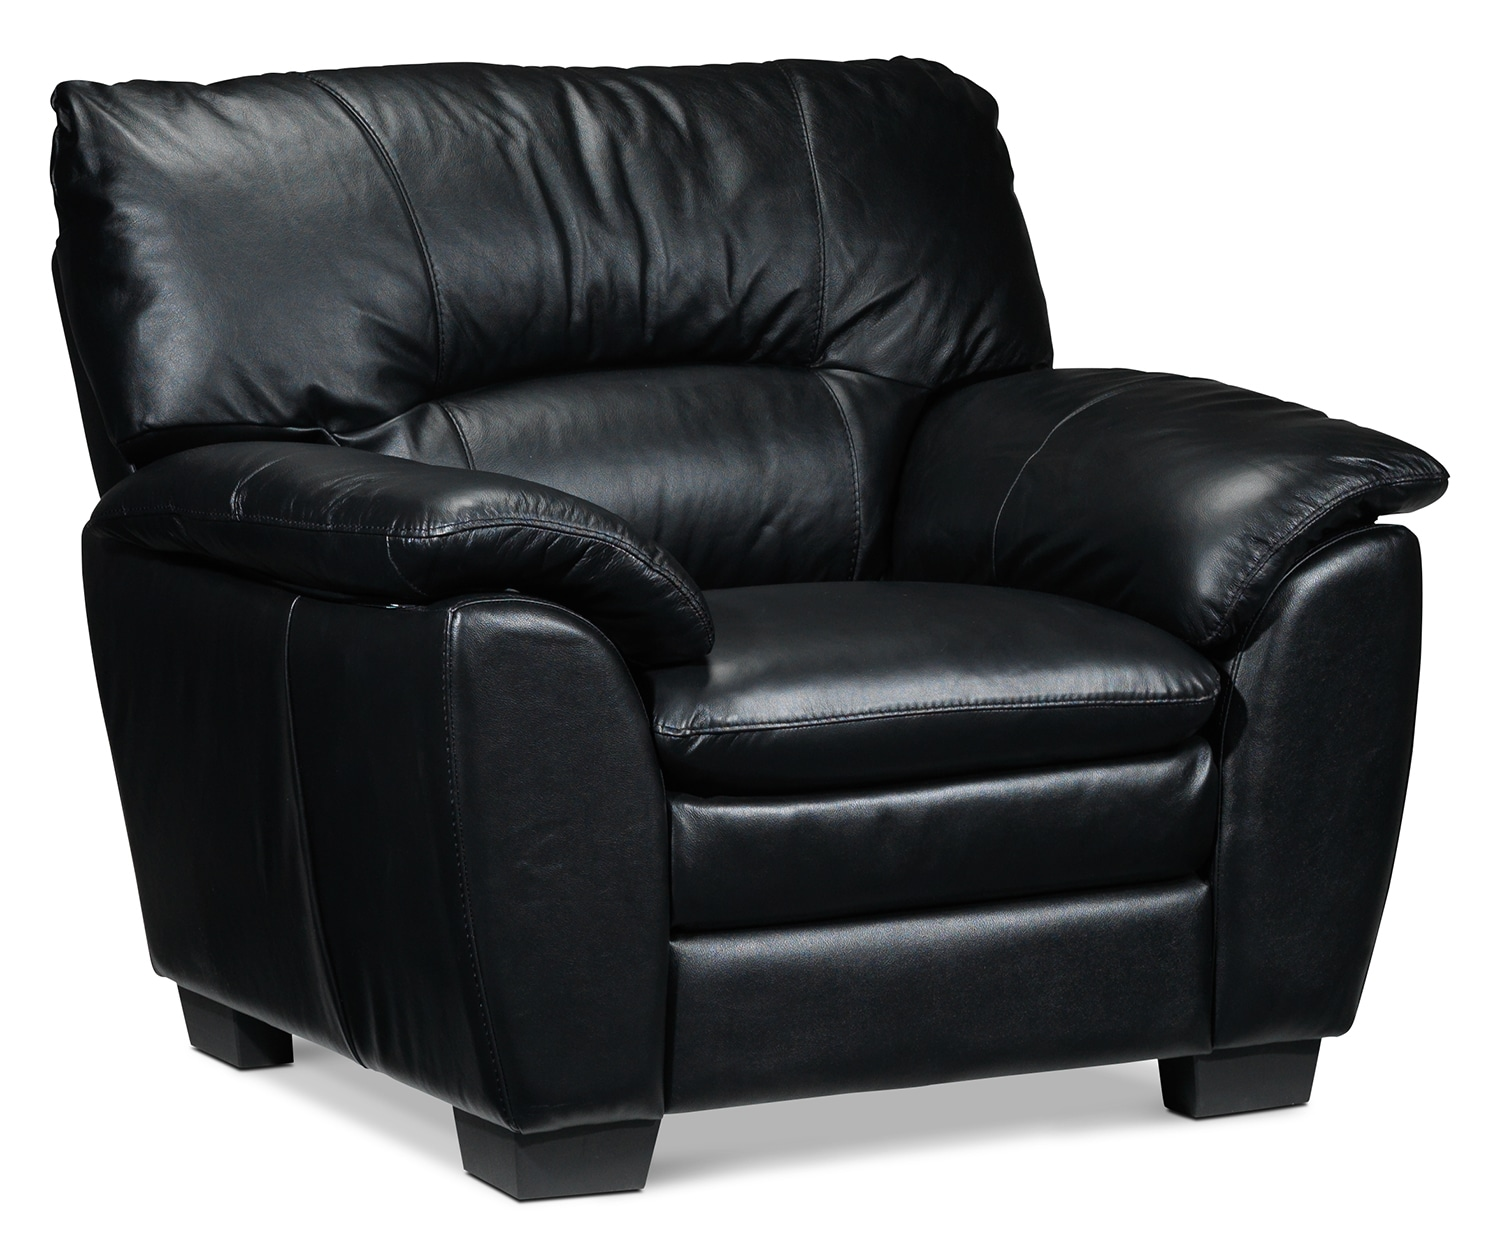 Living Room Furniture - Rodero Chair - Black